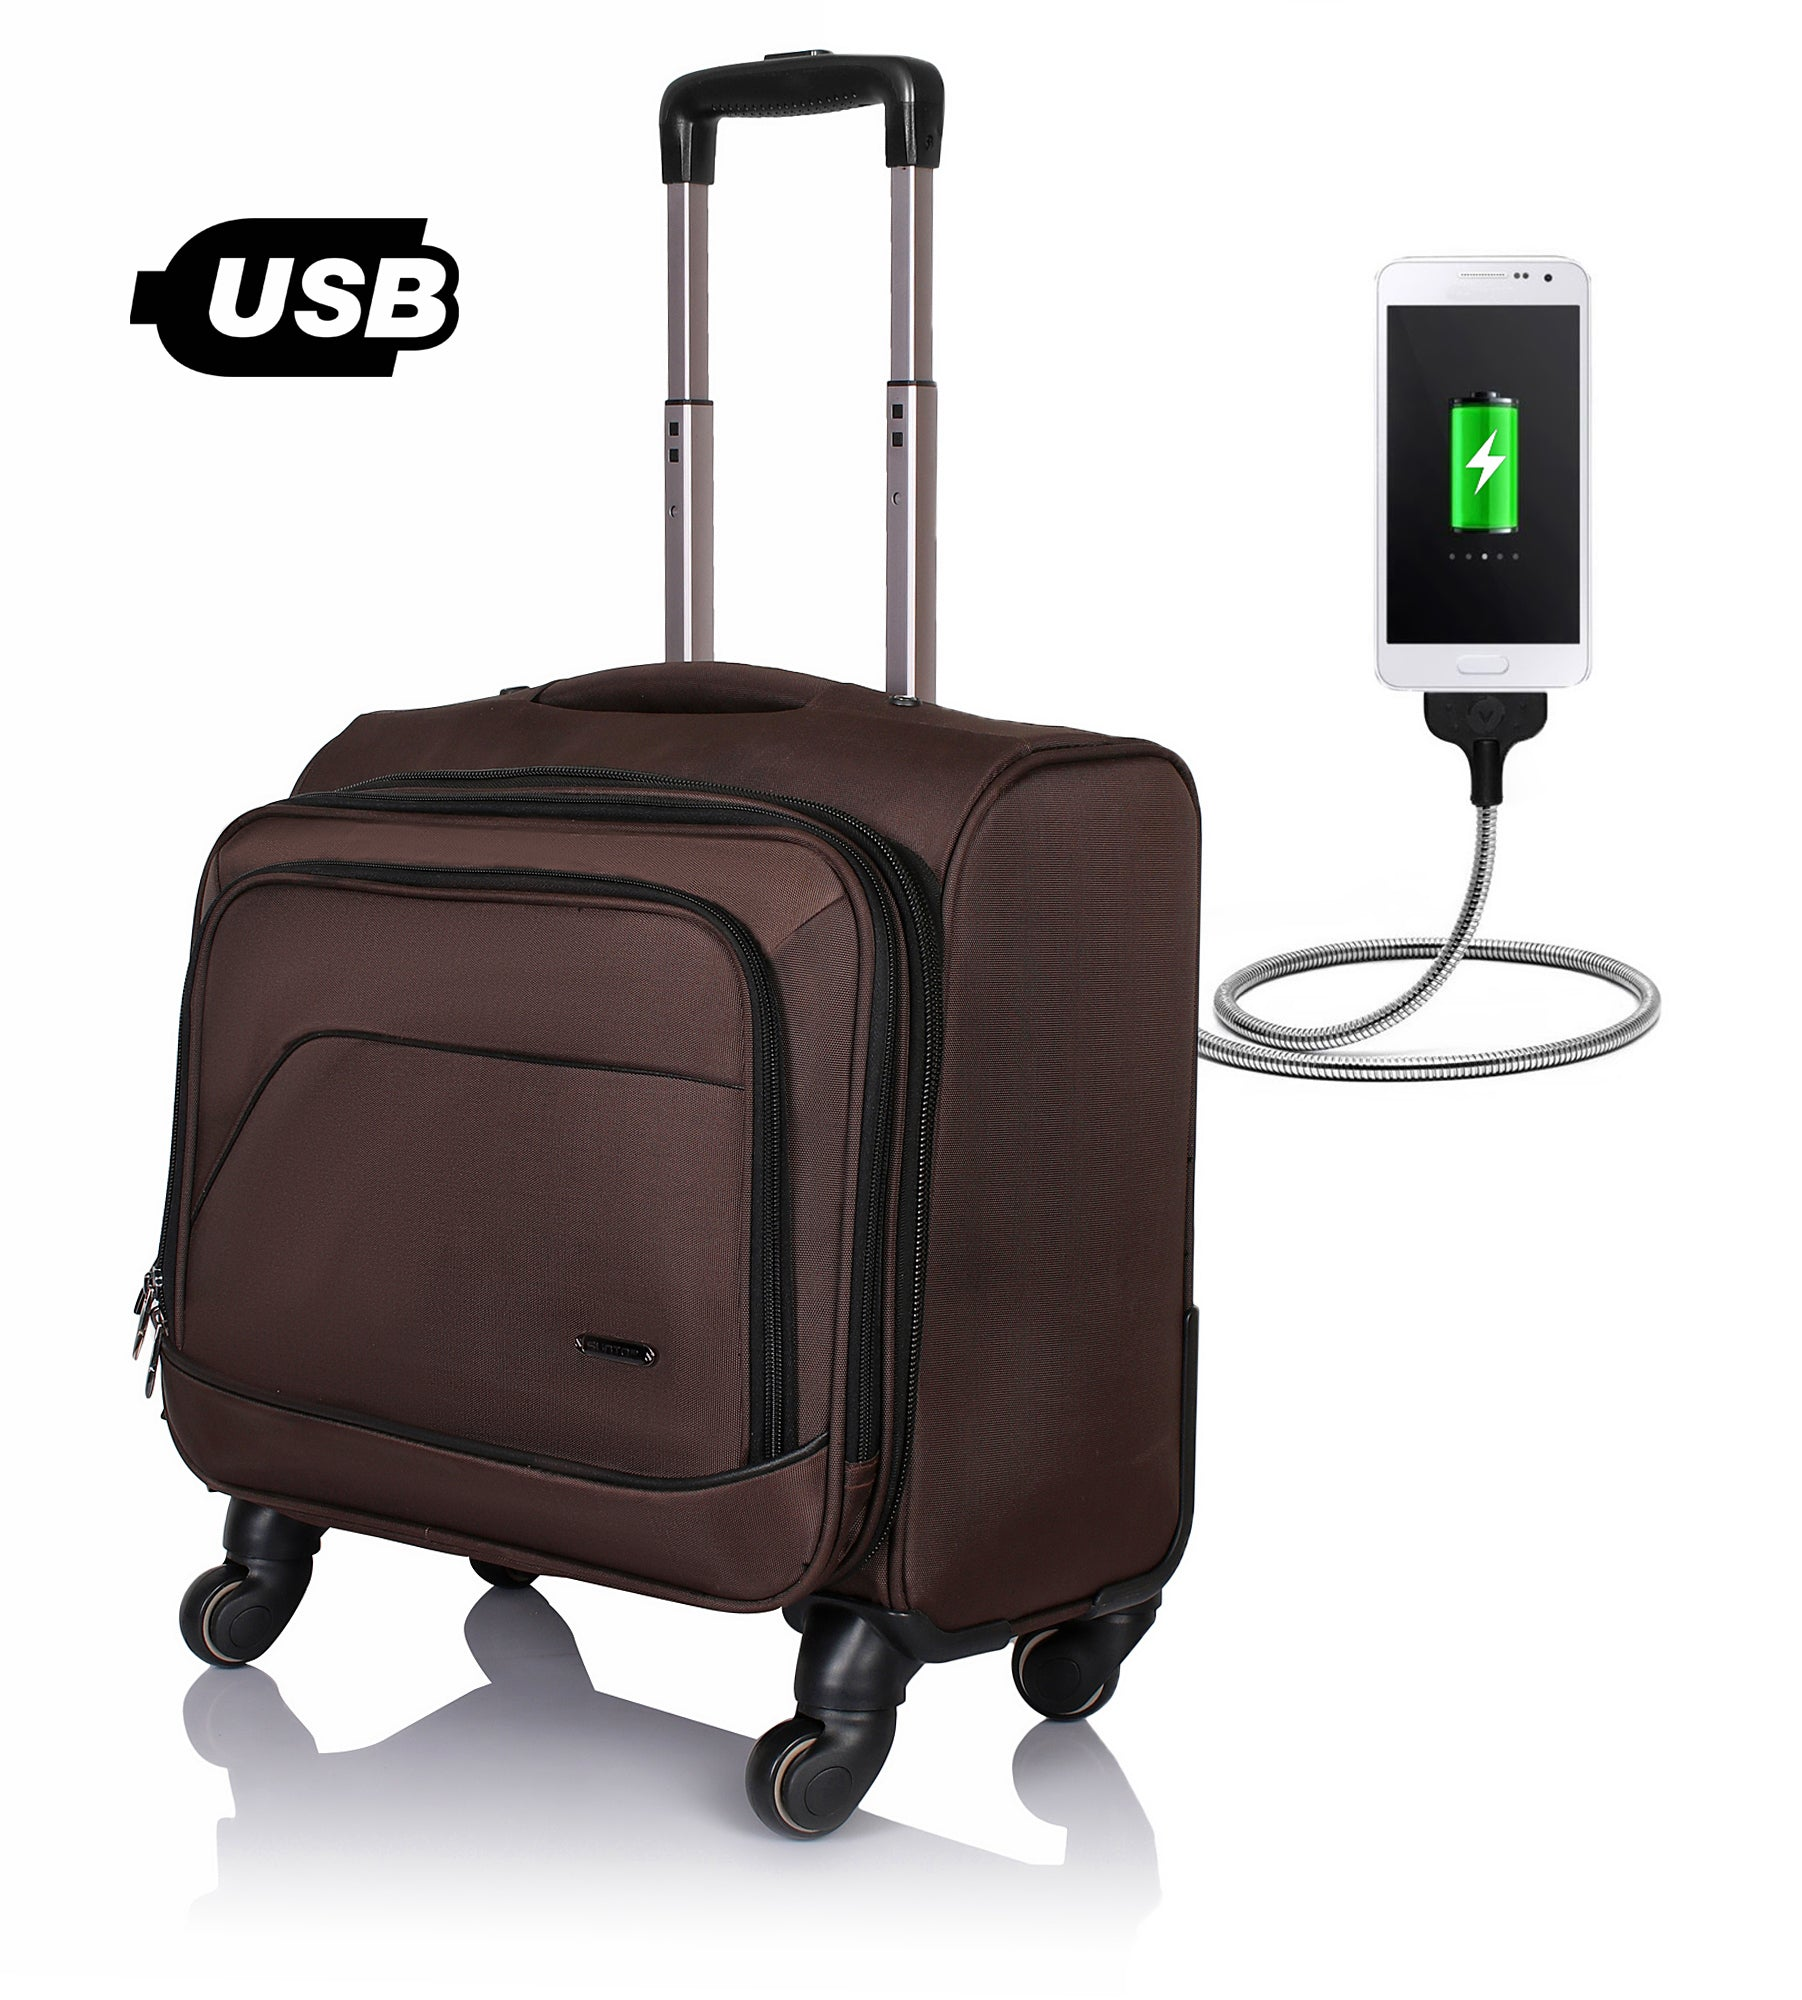 Suntop TechV Wheelie USB Laptop Bag with 360 degree rotating 4 wheels Spinner Trolley (Brown Color)